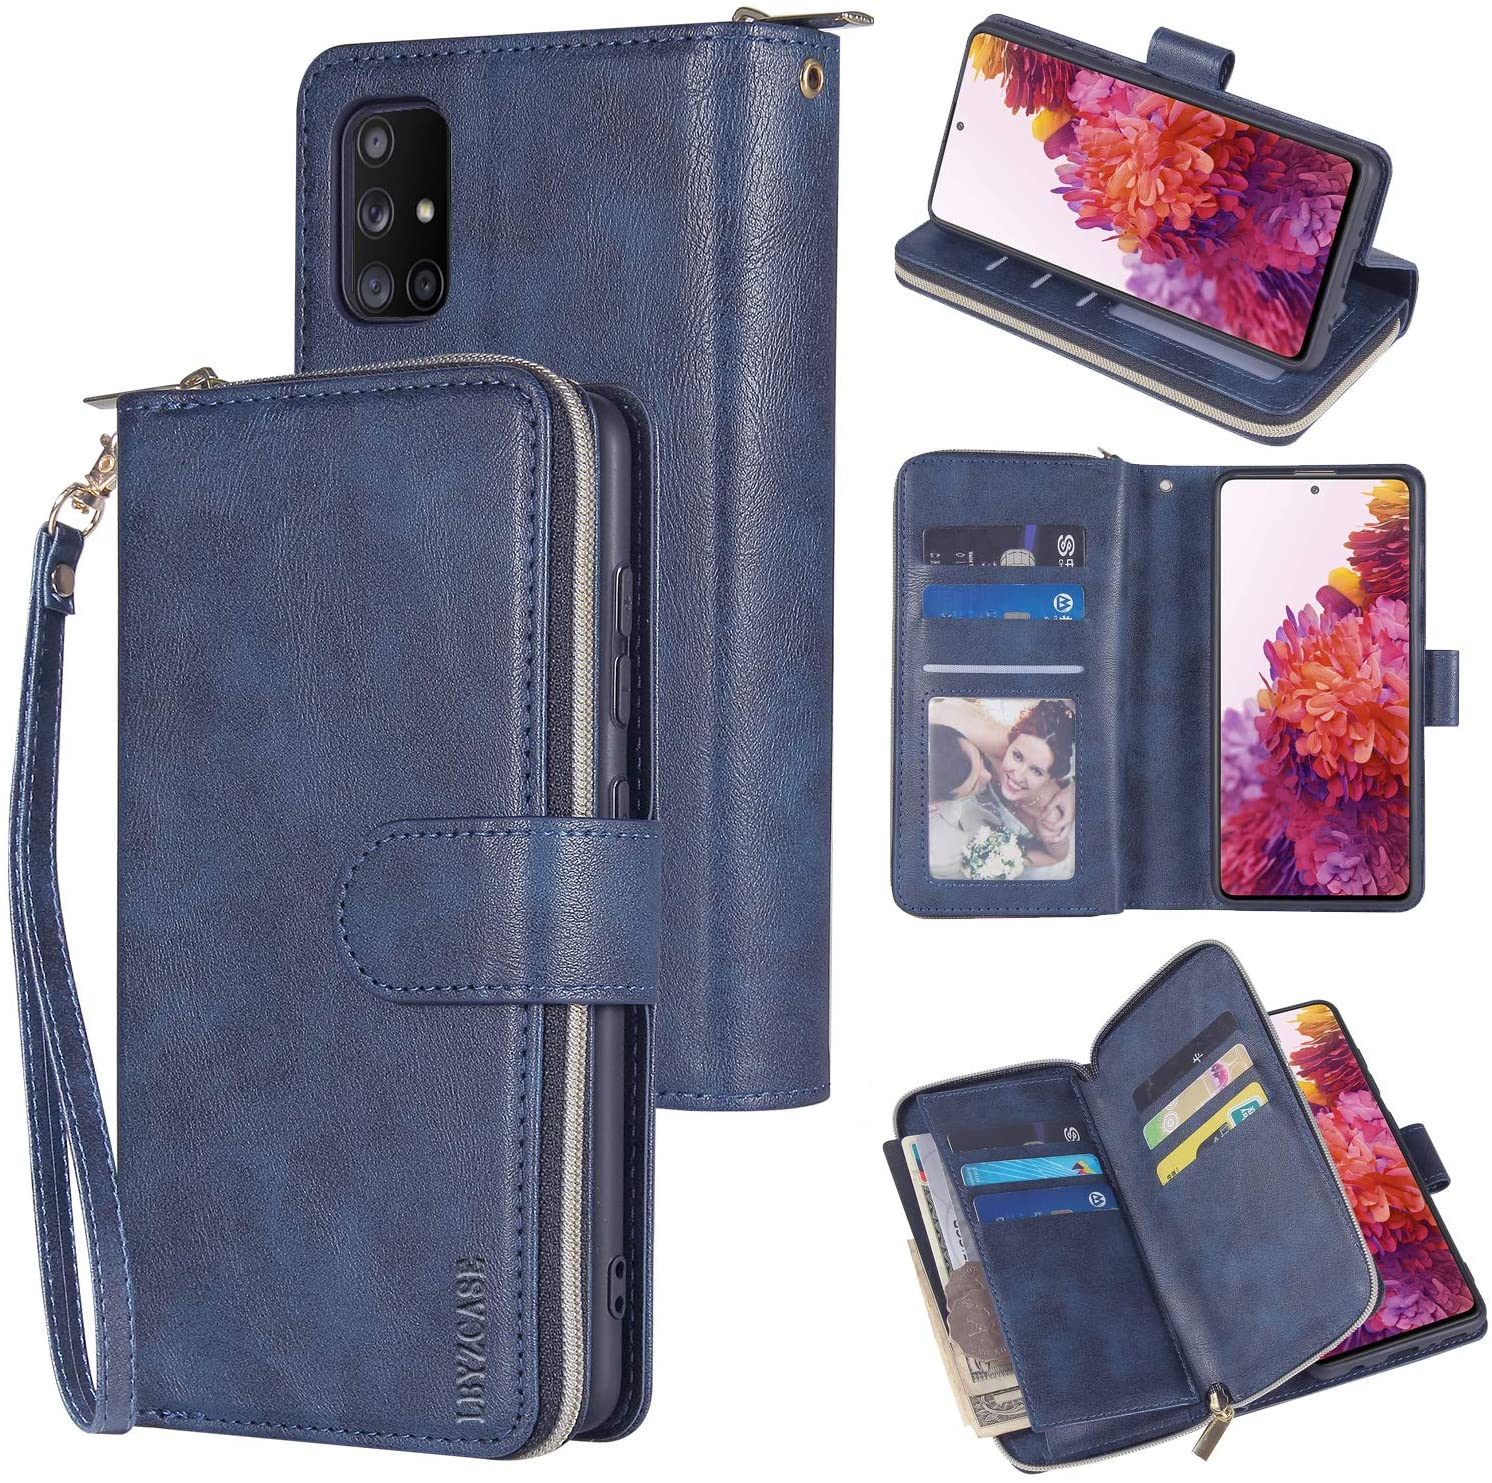 LBYZCASE Wallet Case for Galaxy S20 FE 5G(2020),Samsung S20 FE Phone Case,Folio Flip Leather Cover[Zipper Pocket][9 Card Slots][Kickstand] for Samsung Galaxy S20 FE 5G(Fan Edition) (Blue)